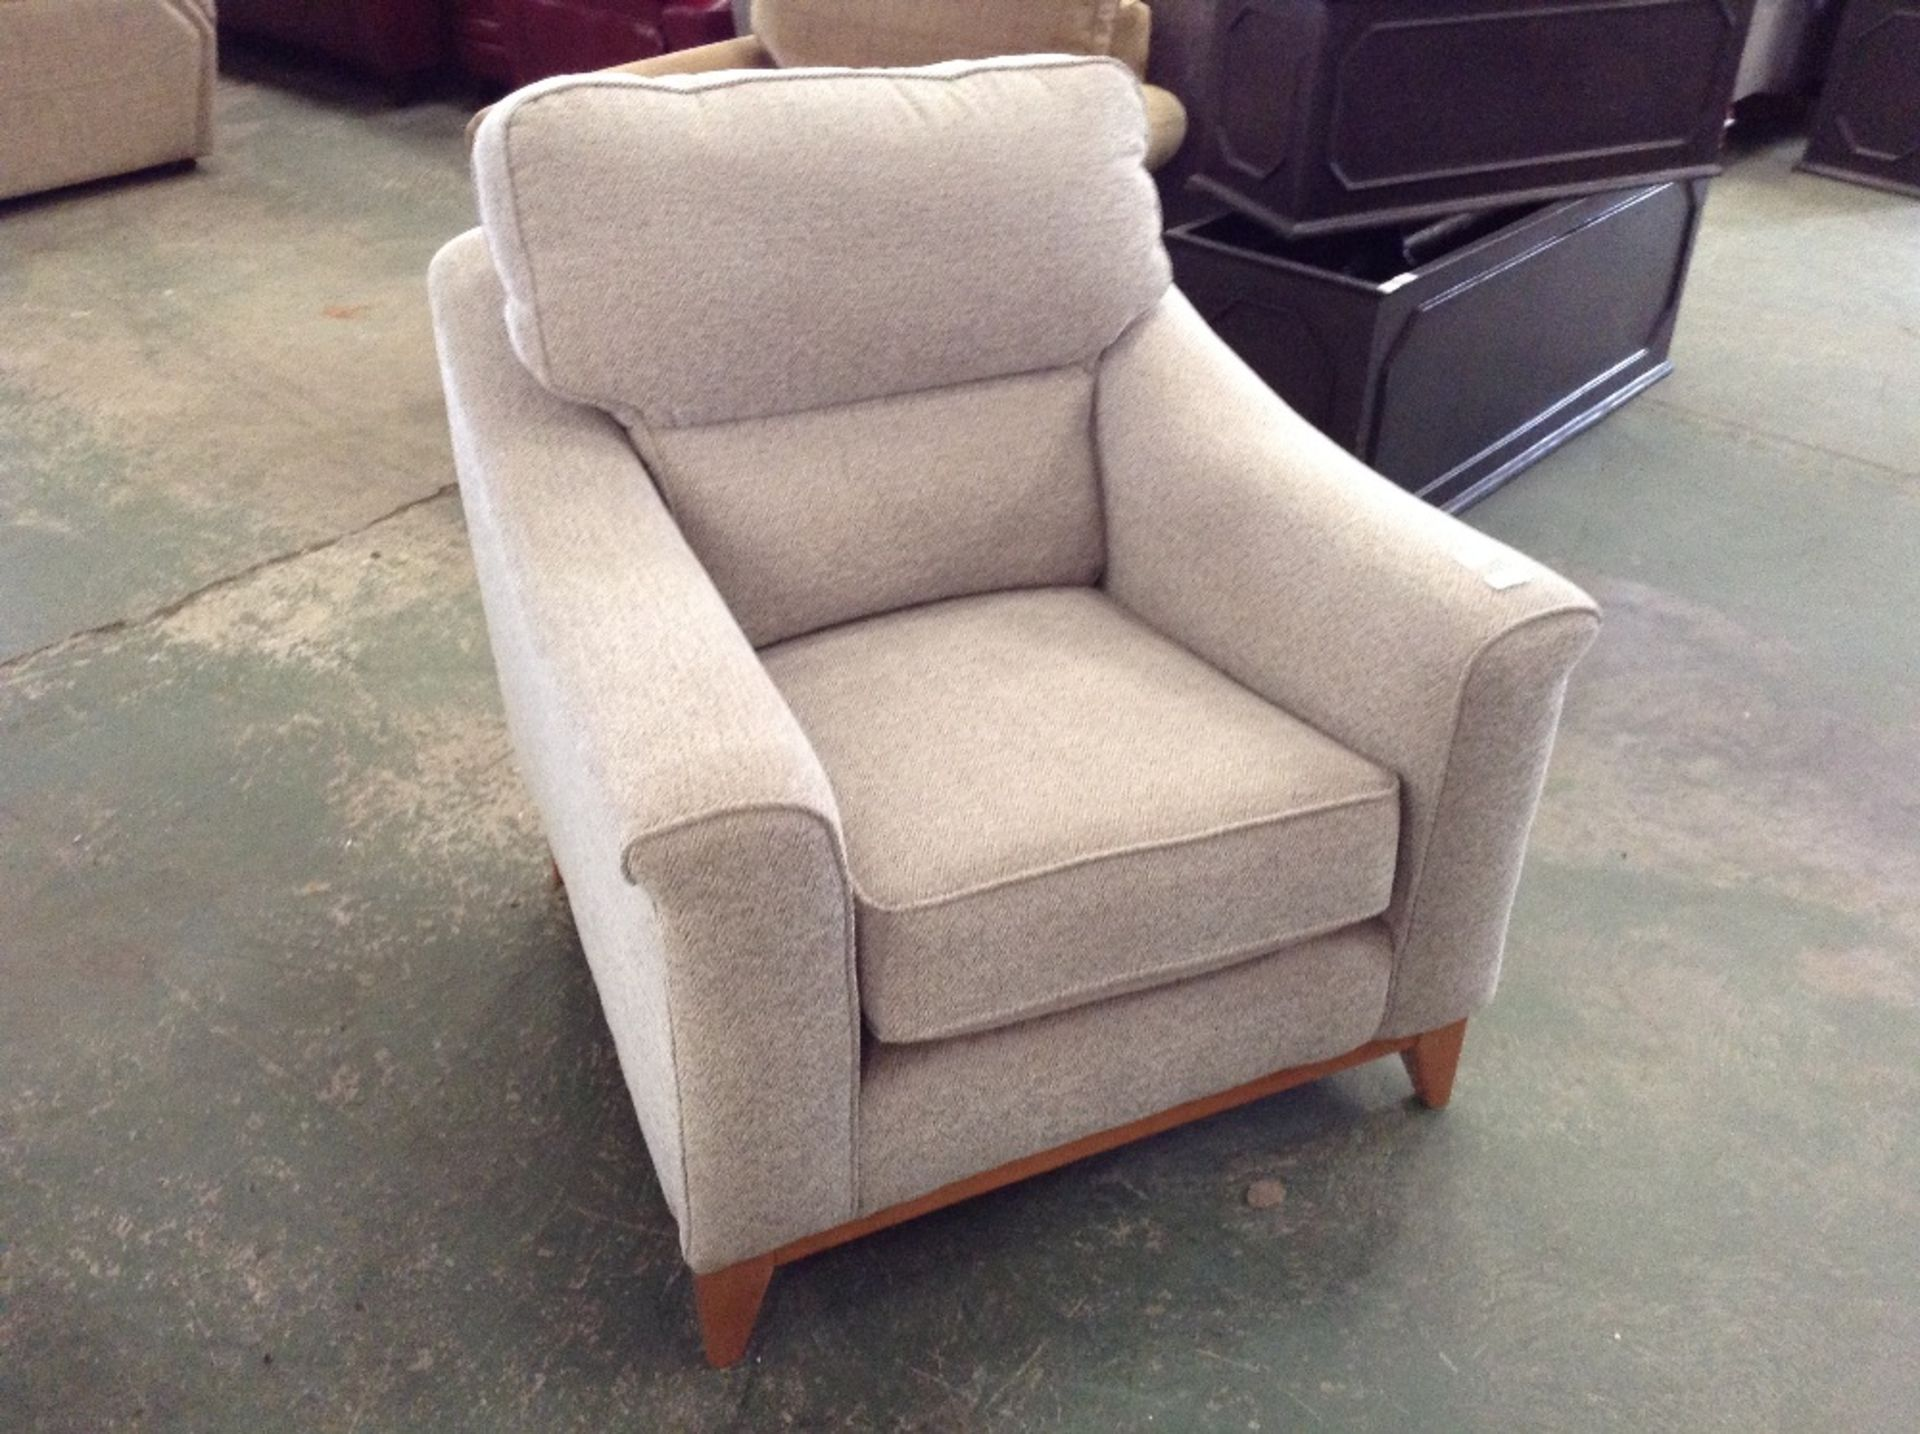 Lot 63 - GREY PATTERNED CHAIR (TROO1629-WOO614002)